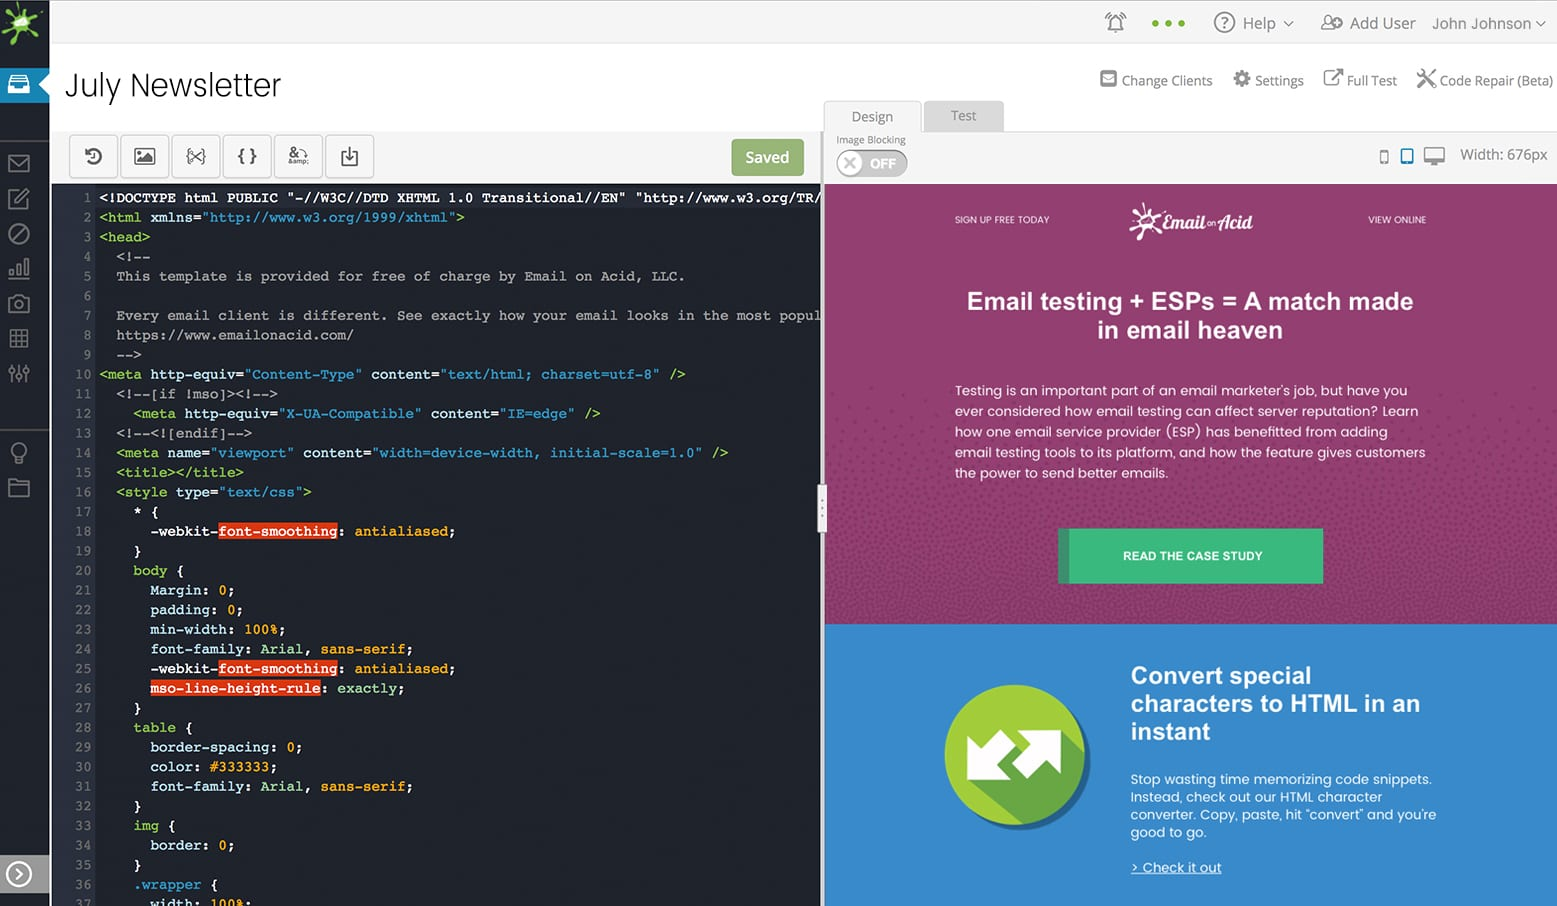 Email Editor in use